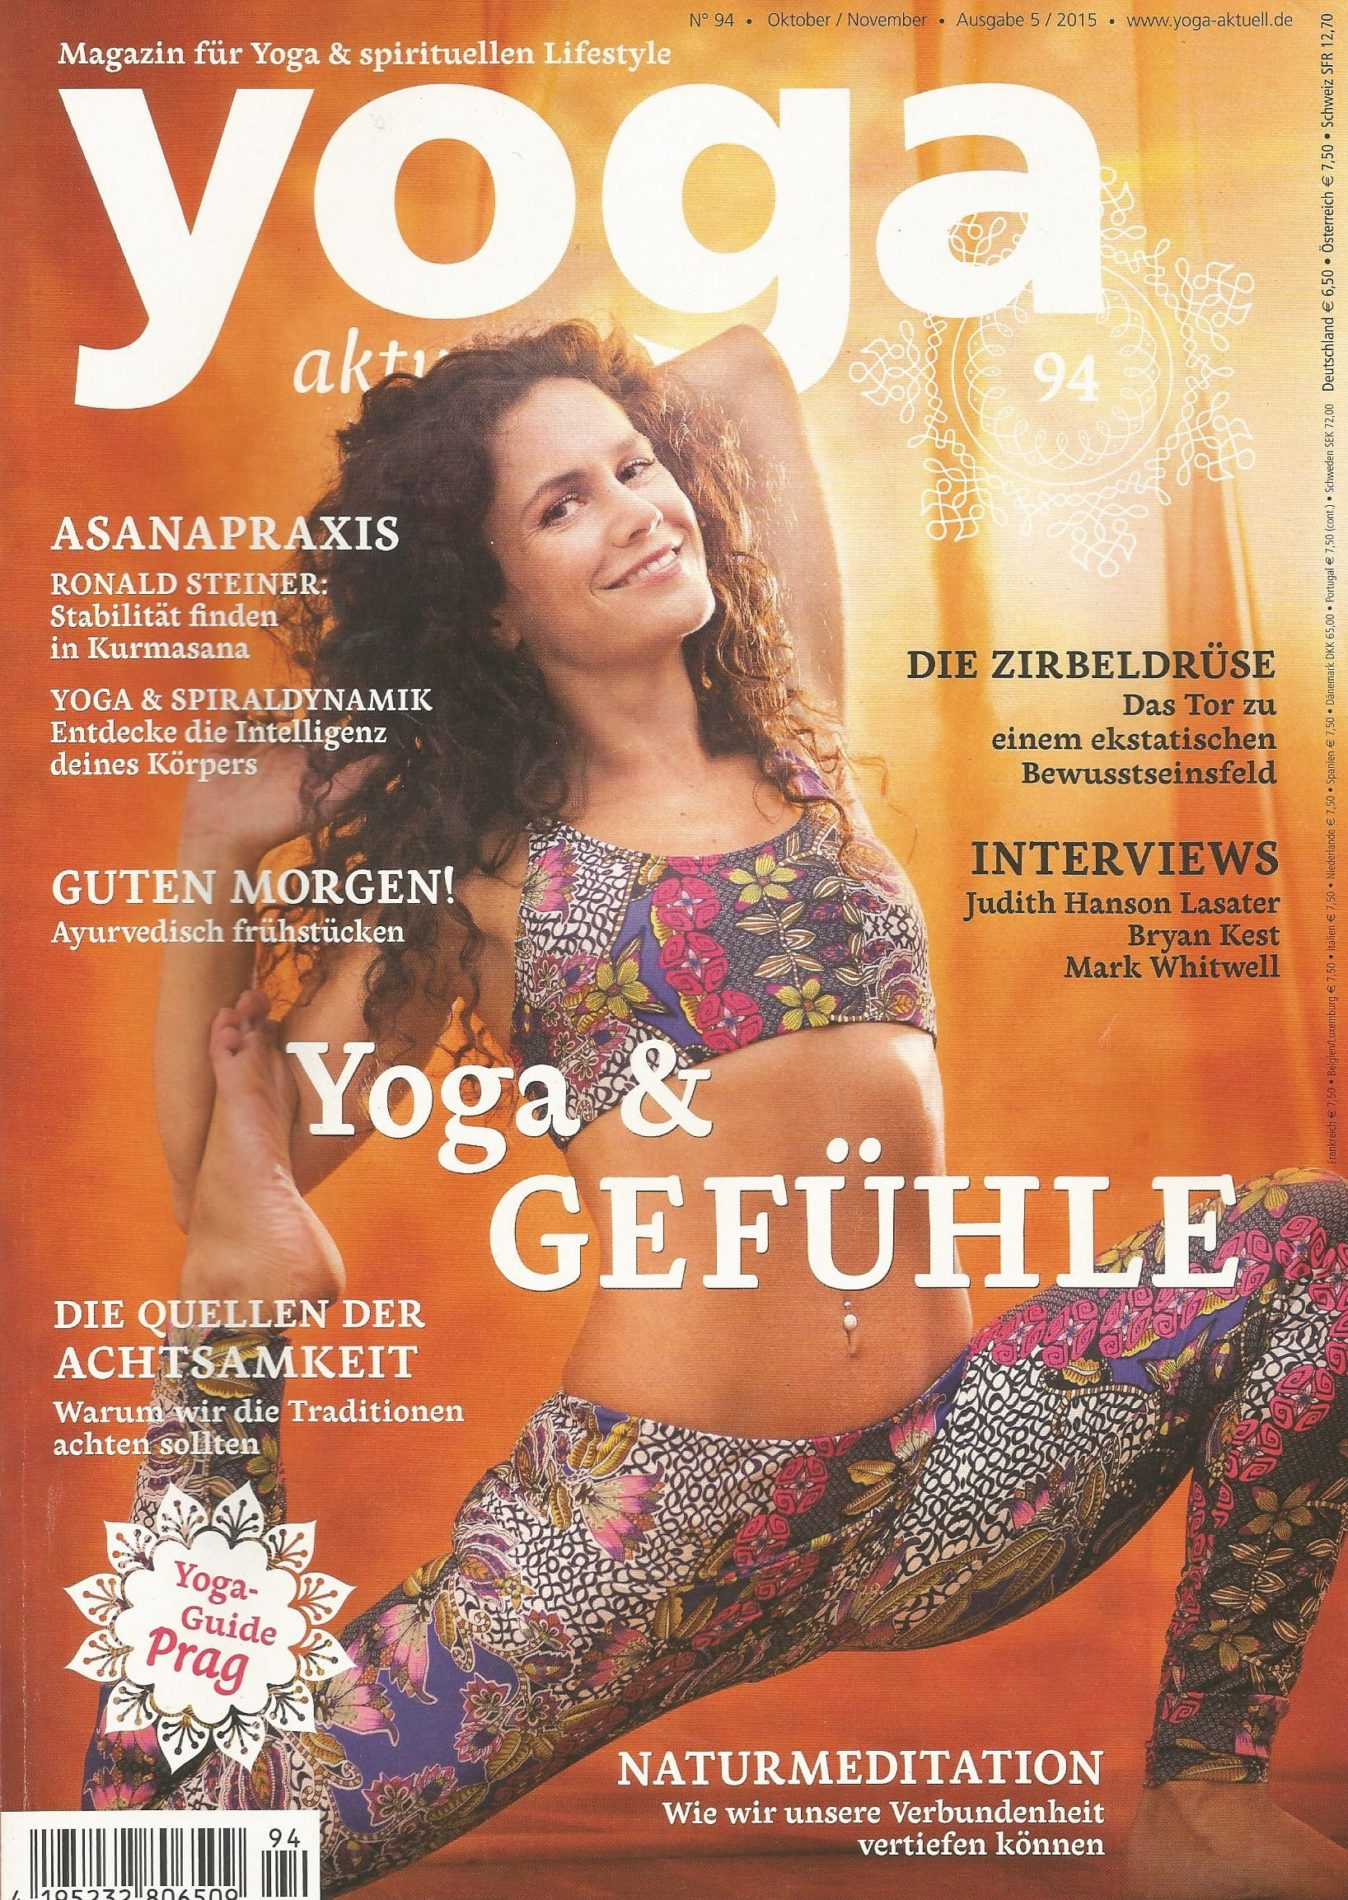 Yoga aktuell – CD review